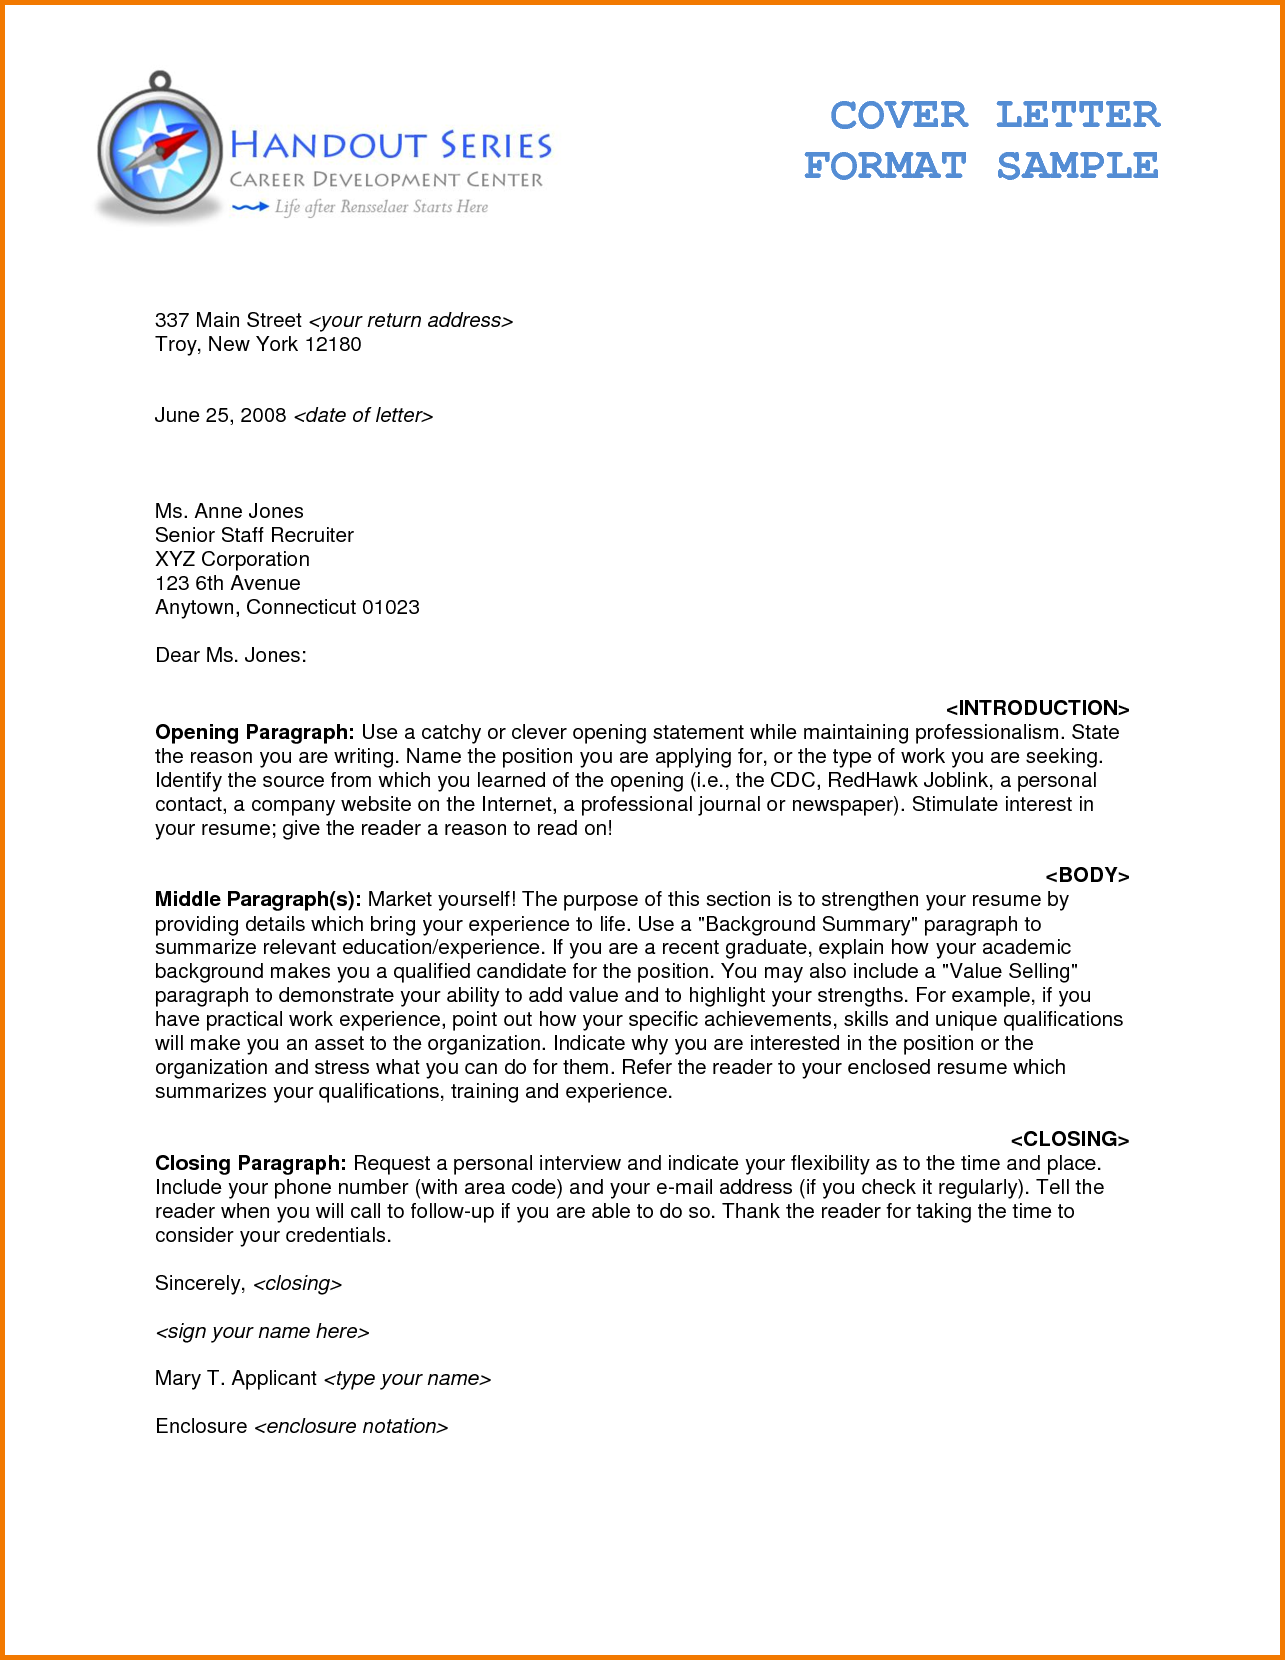 Formal letter format writing cbse class sample how write business formal letter format writing cbse class sample how write business official spiritdancerdesigns